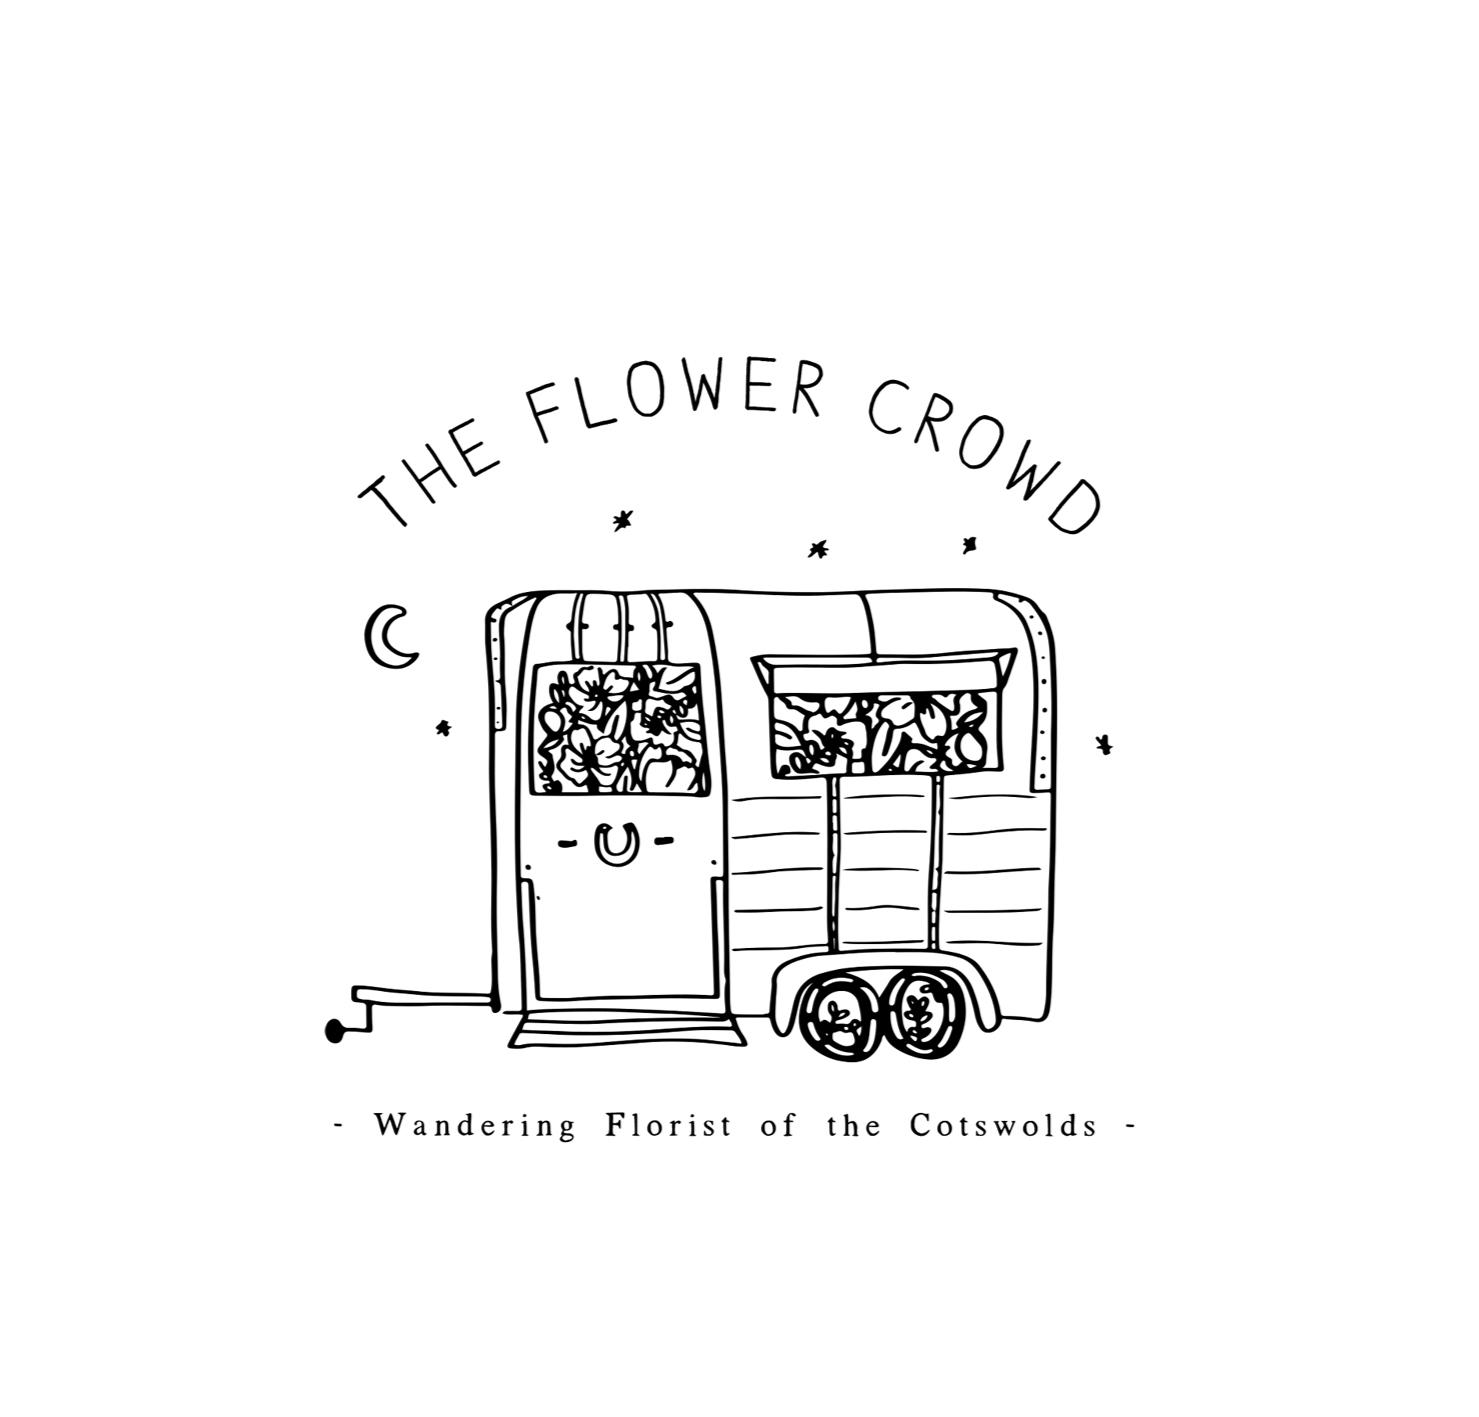 The Flower Crowd